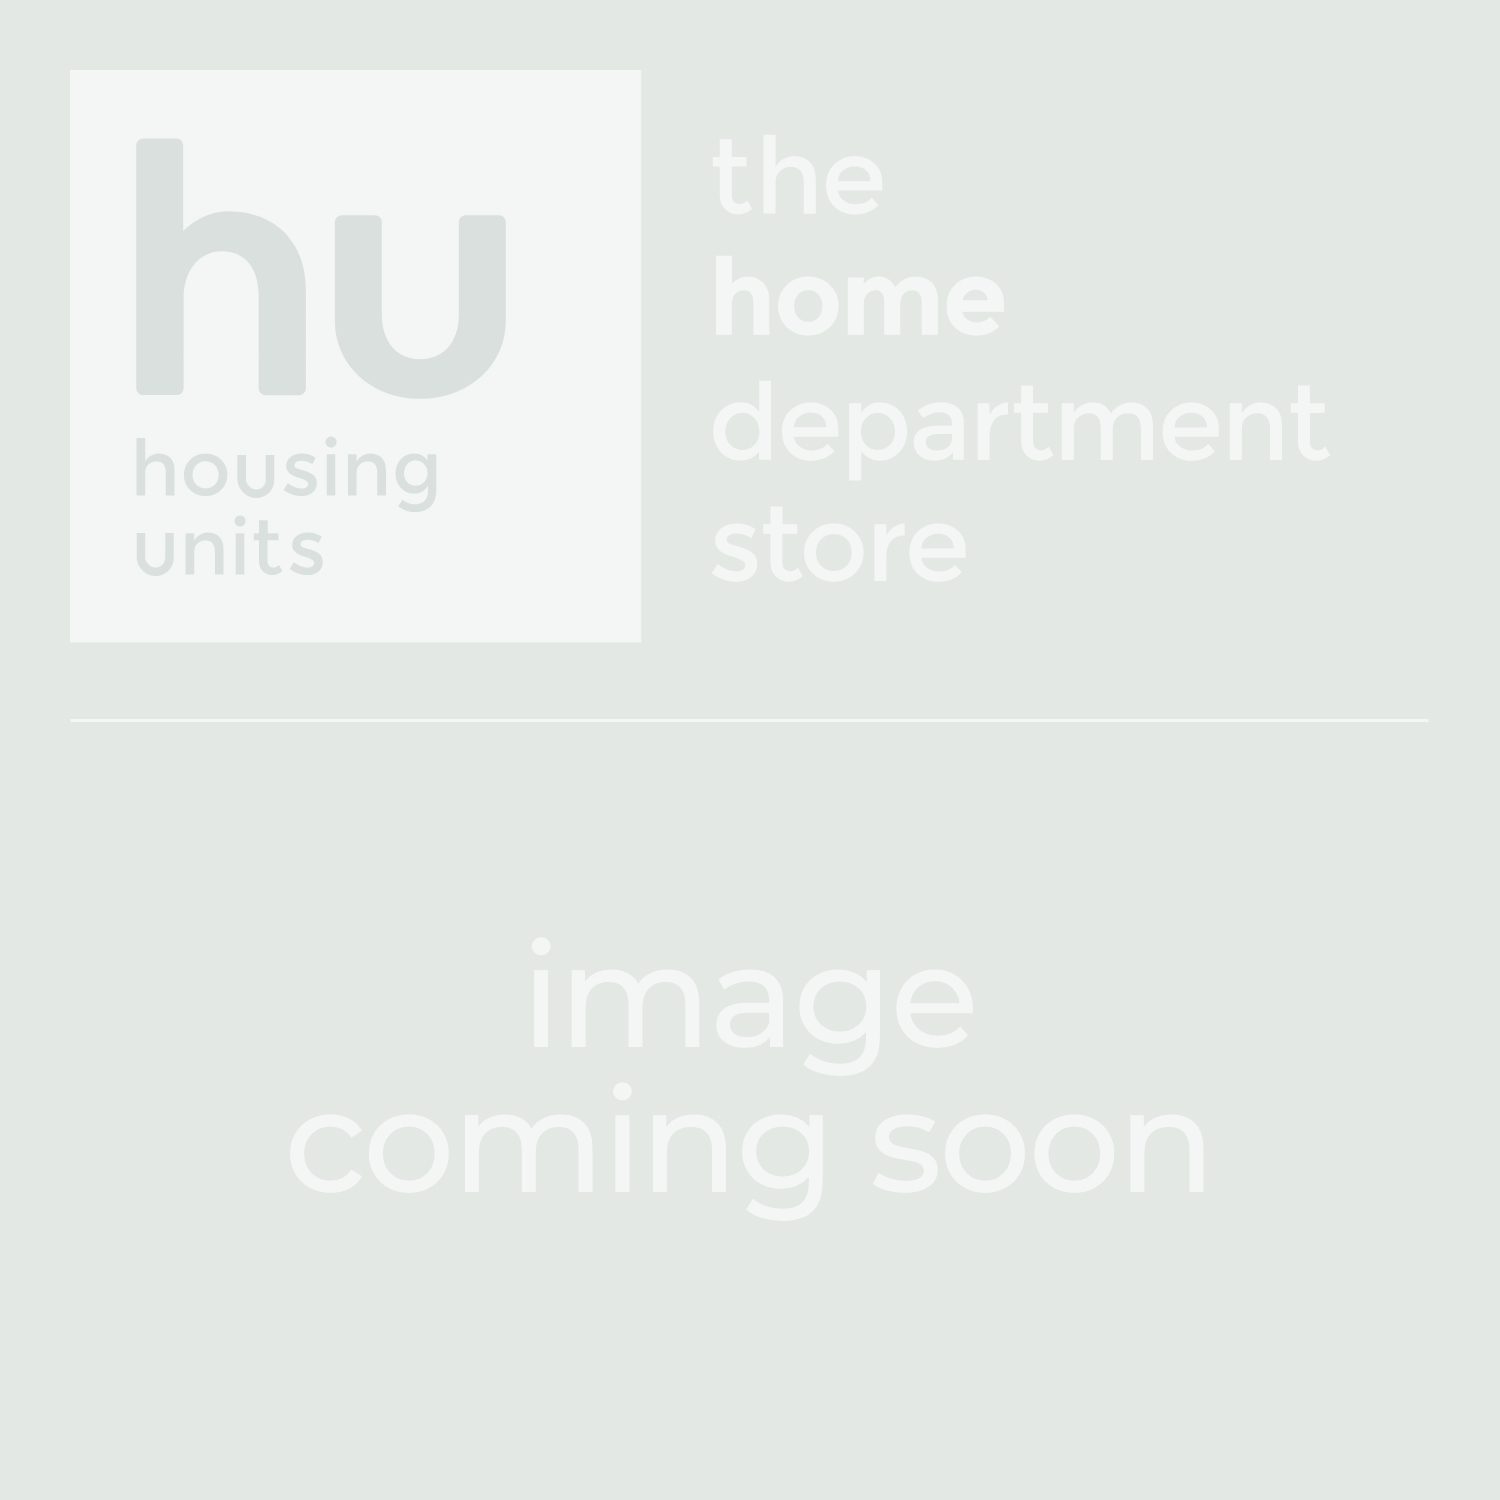 This Breathe Duvet Collection is perfect for those customers who want a luxurious duvet that regulates their temperature to its optimum throughout the night